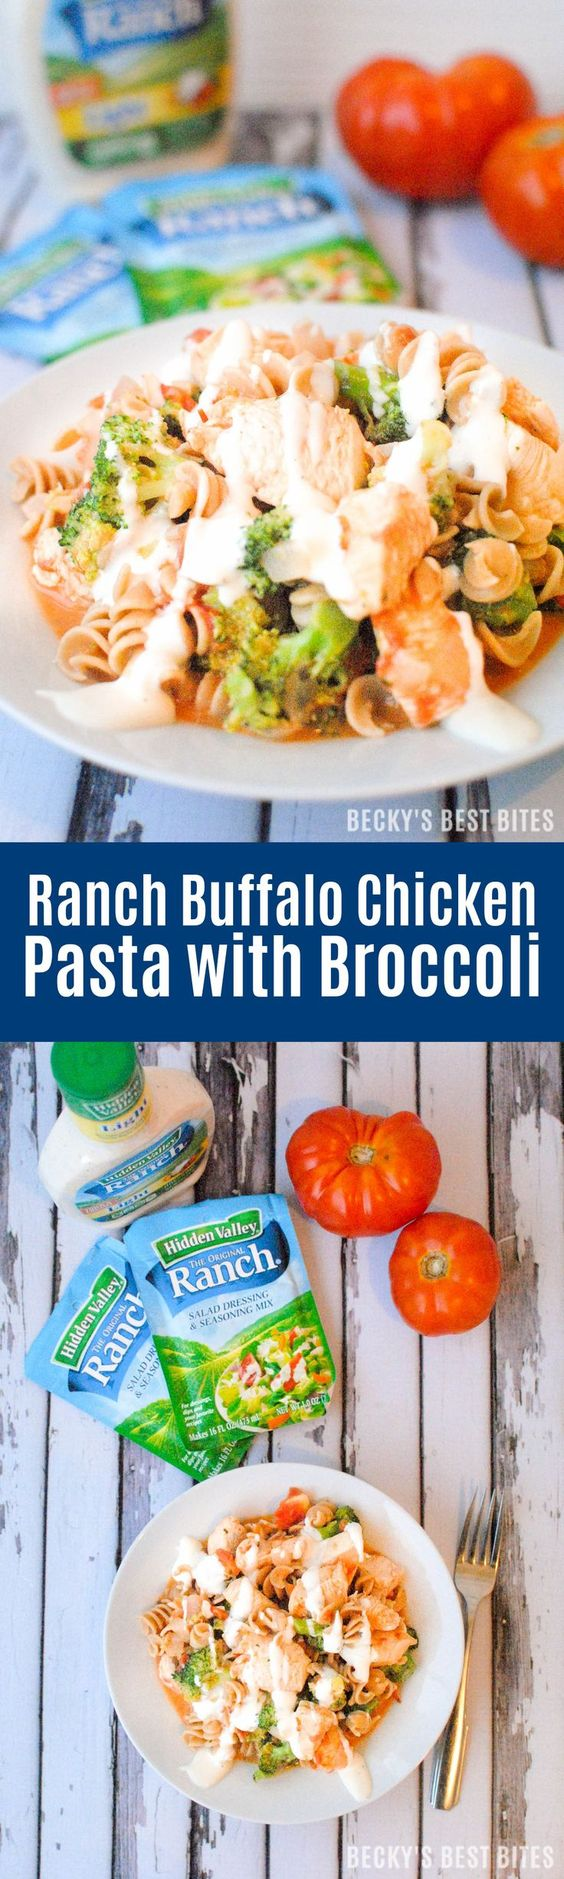 Buffalo chicken pasta recipe ranch